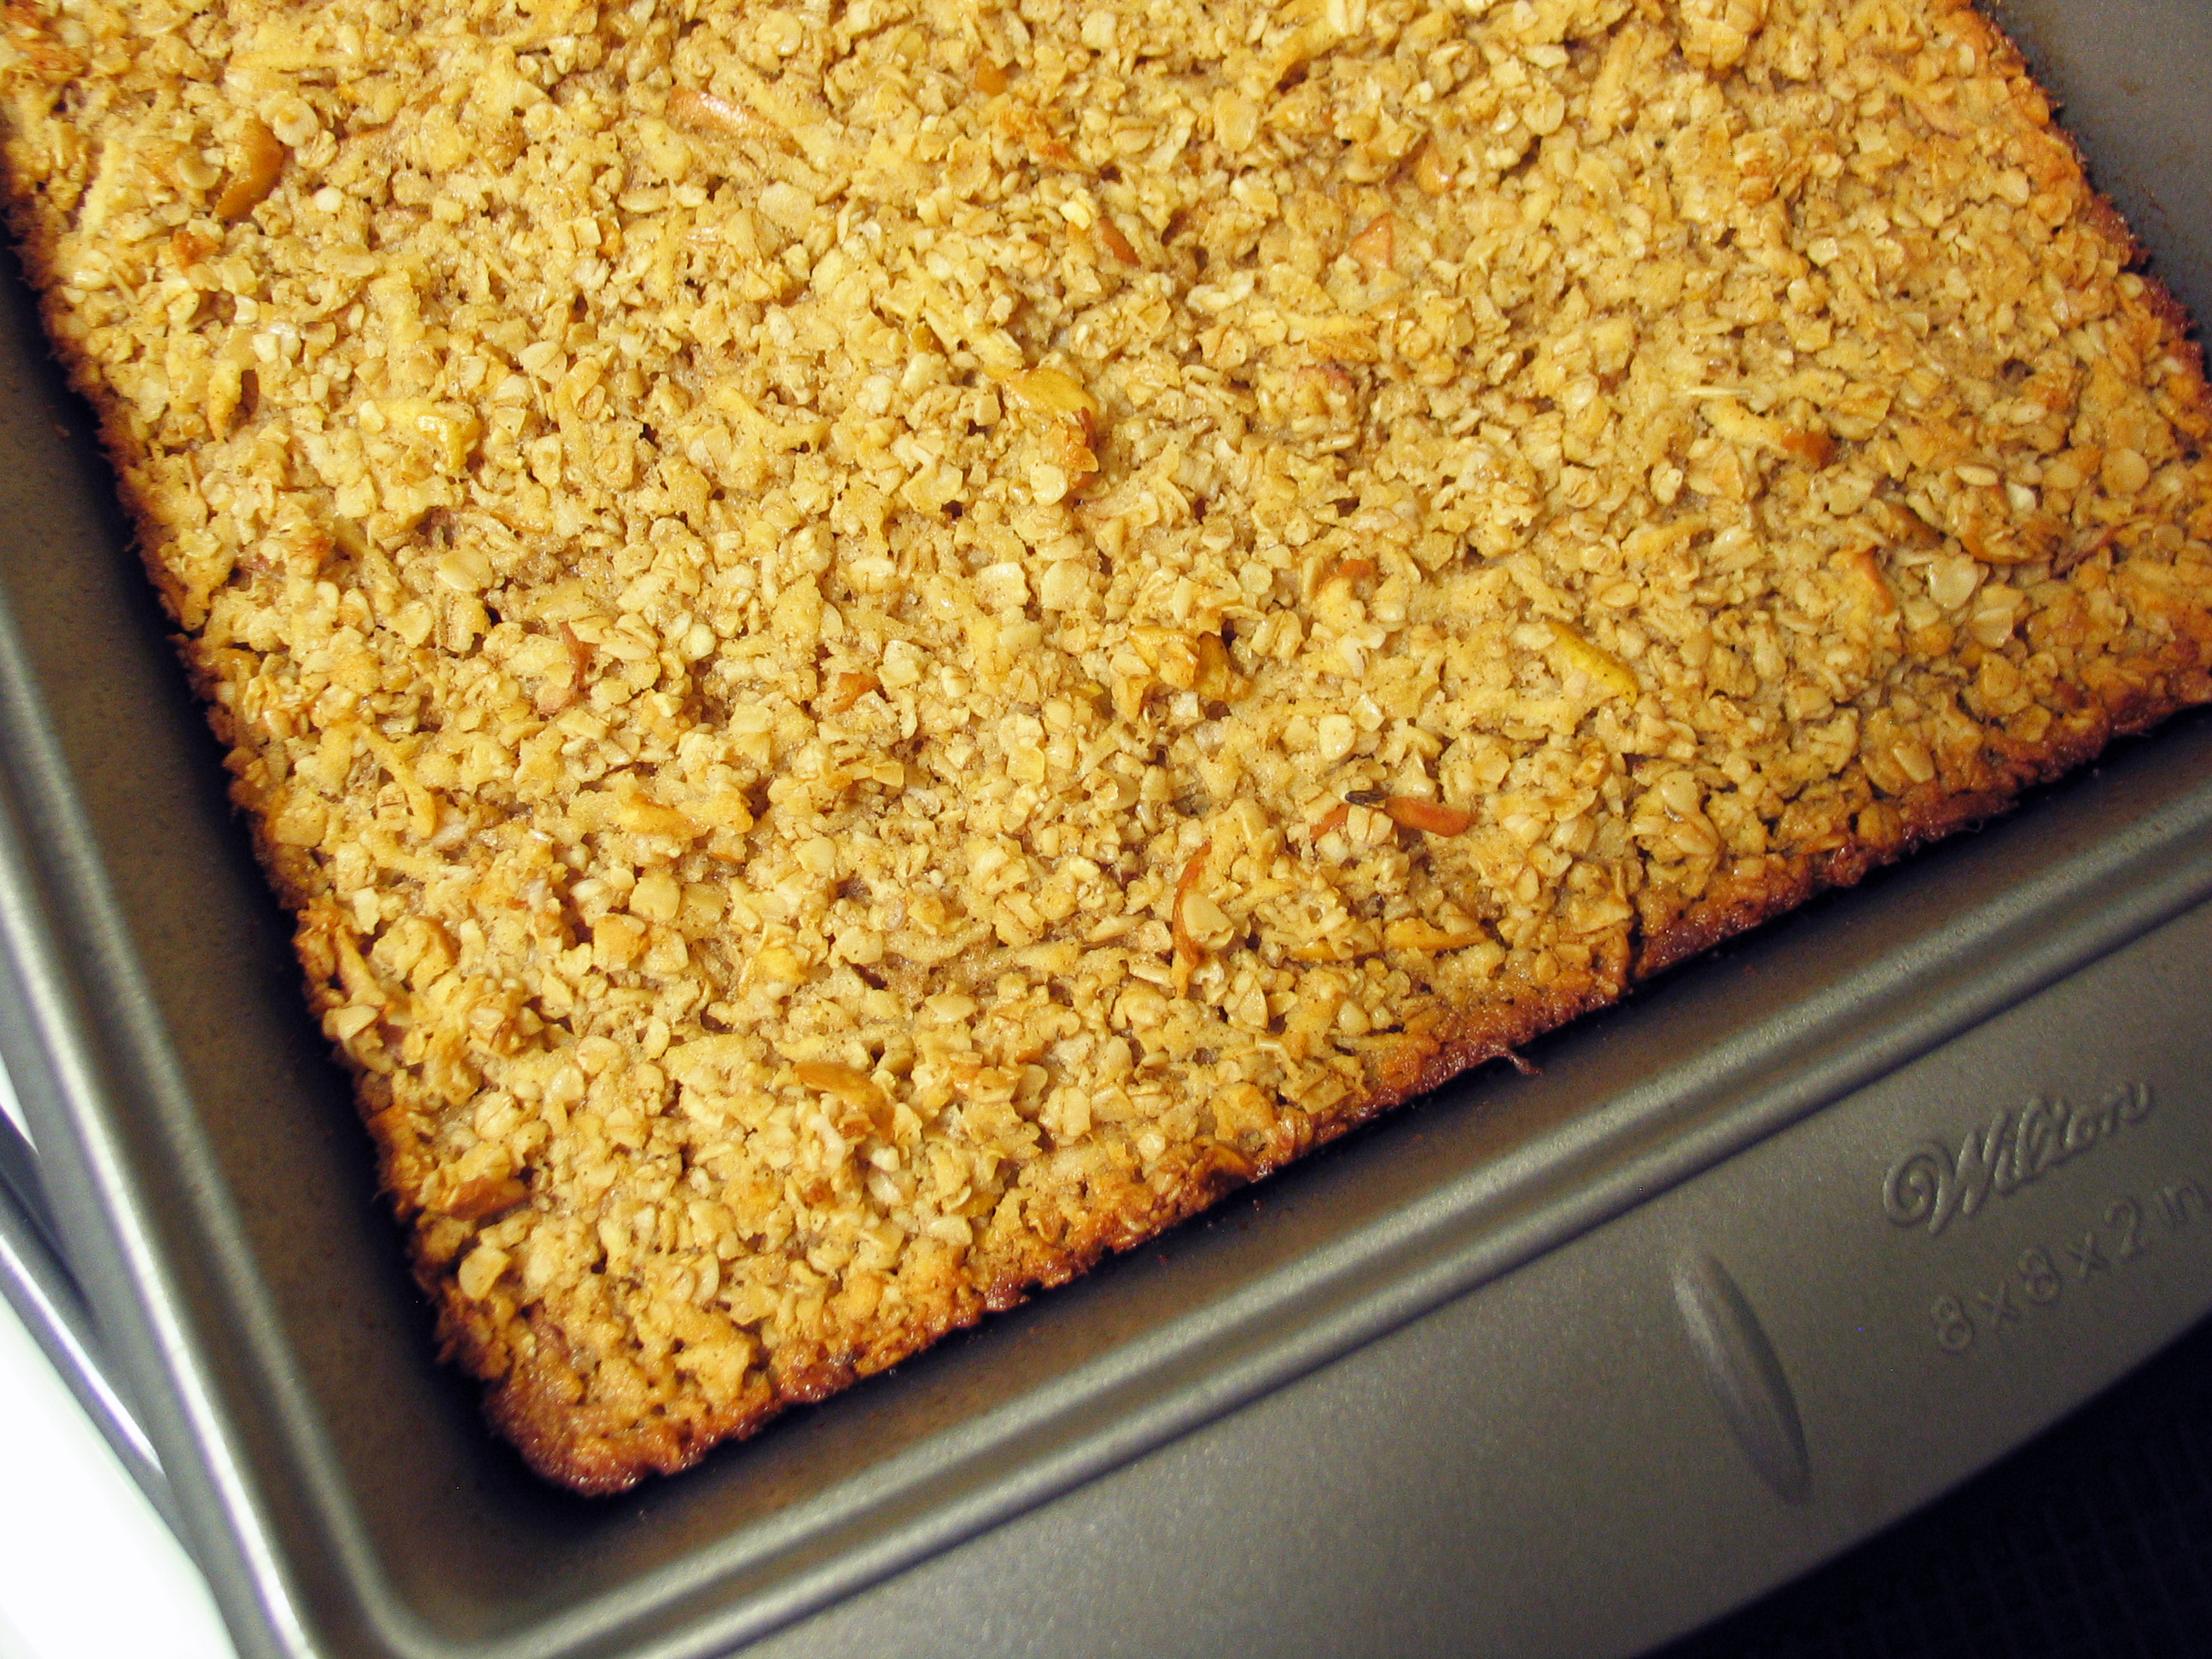 Michelle's Baked Oatmeal